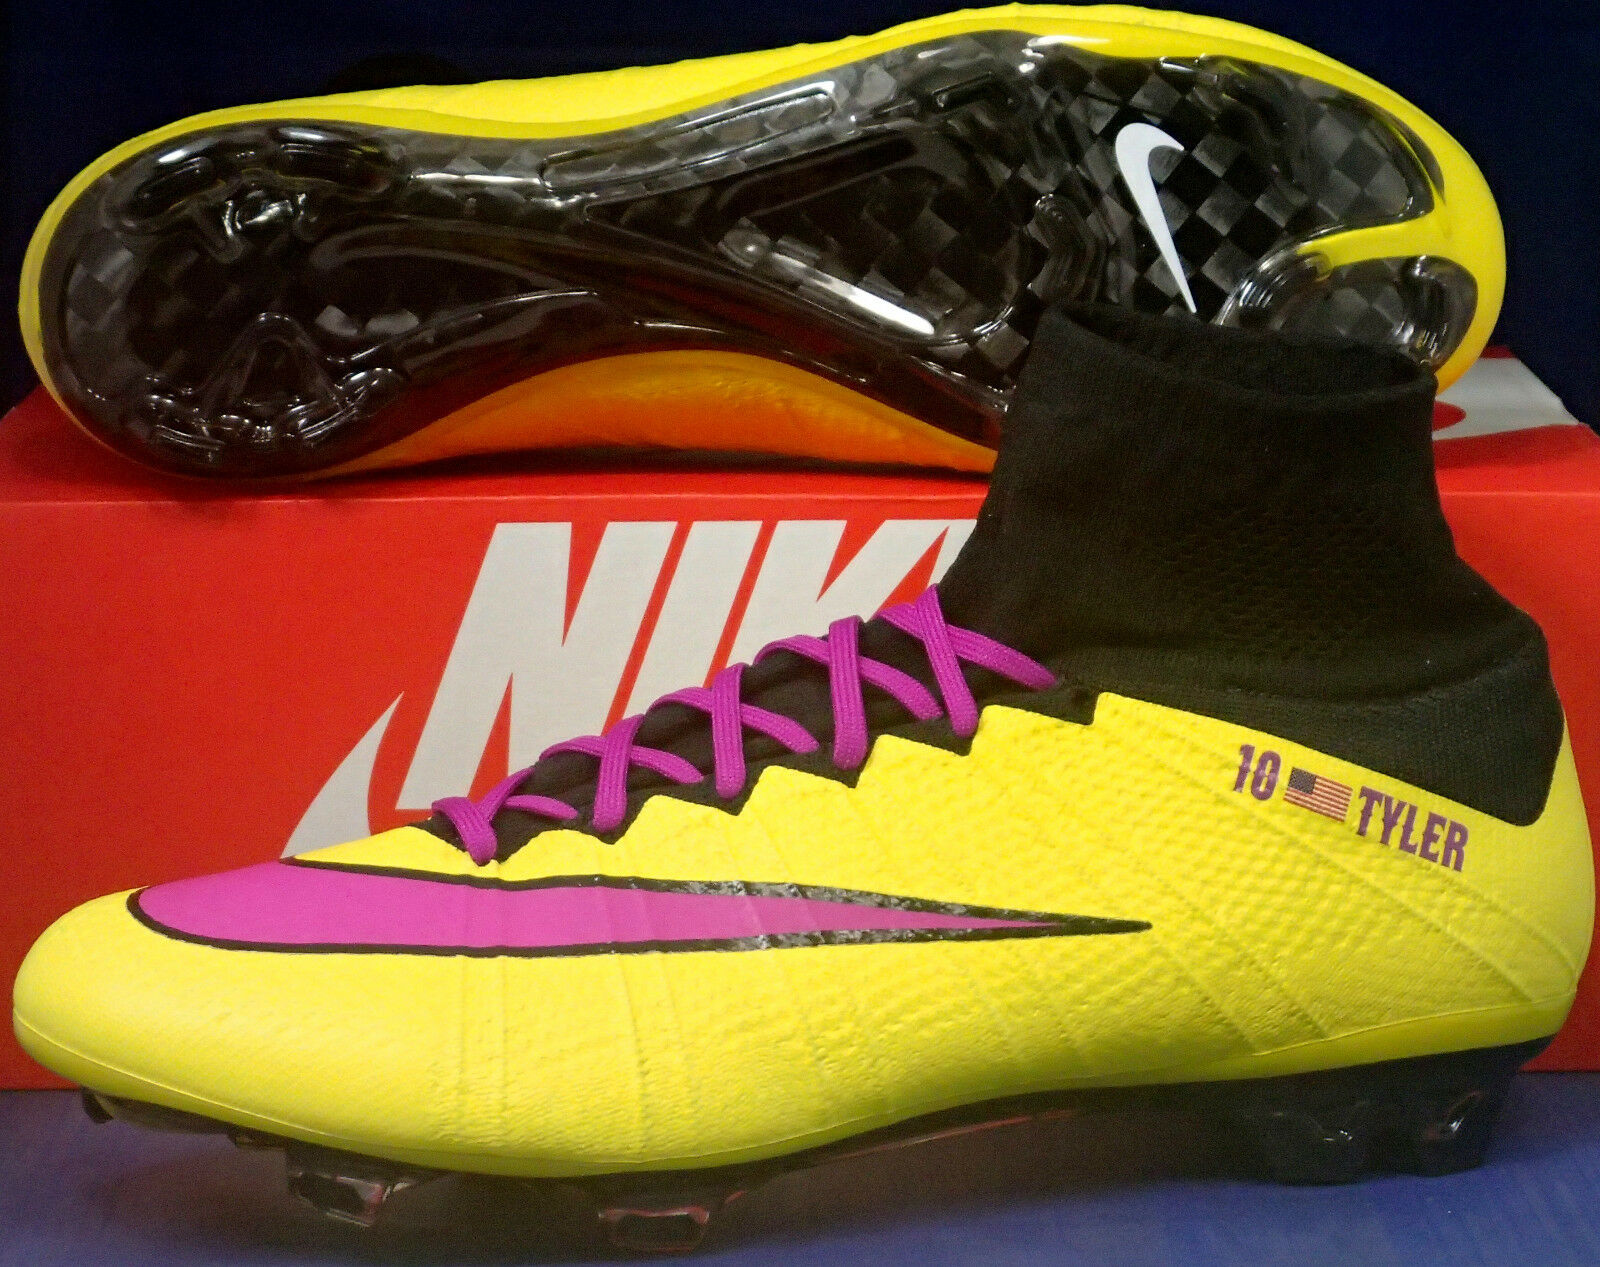 Nike Mercurial Superfly FG iD Yellow Fuchsia Black Boots Price reduction Great discount